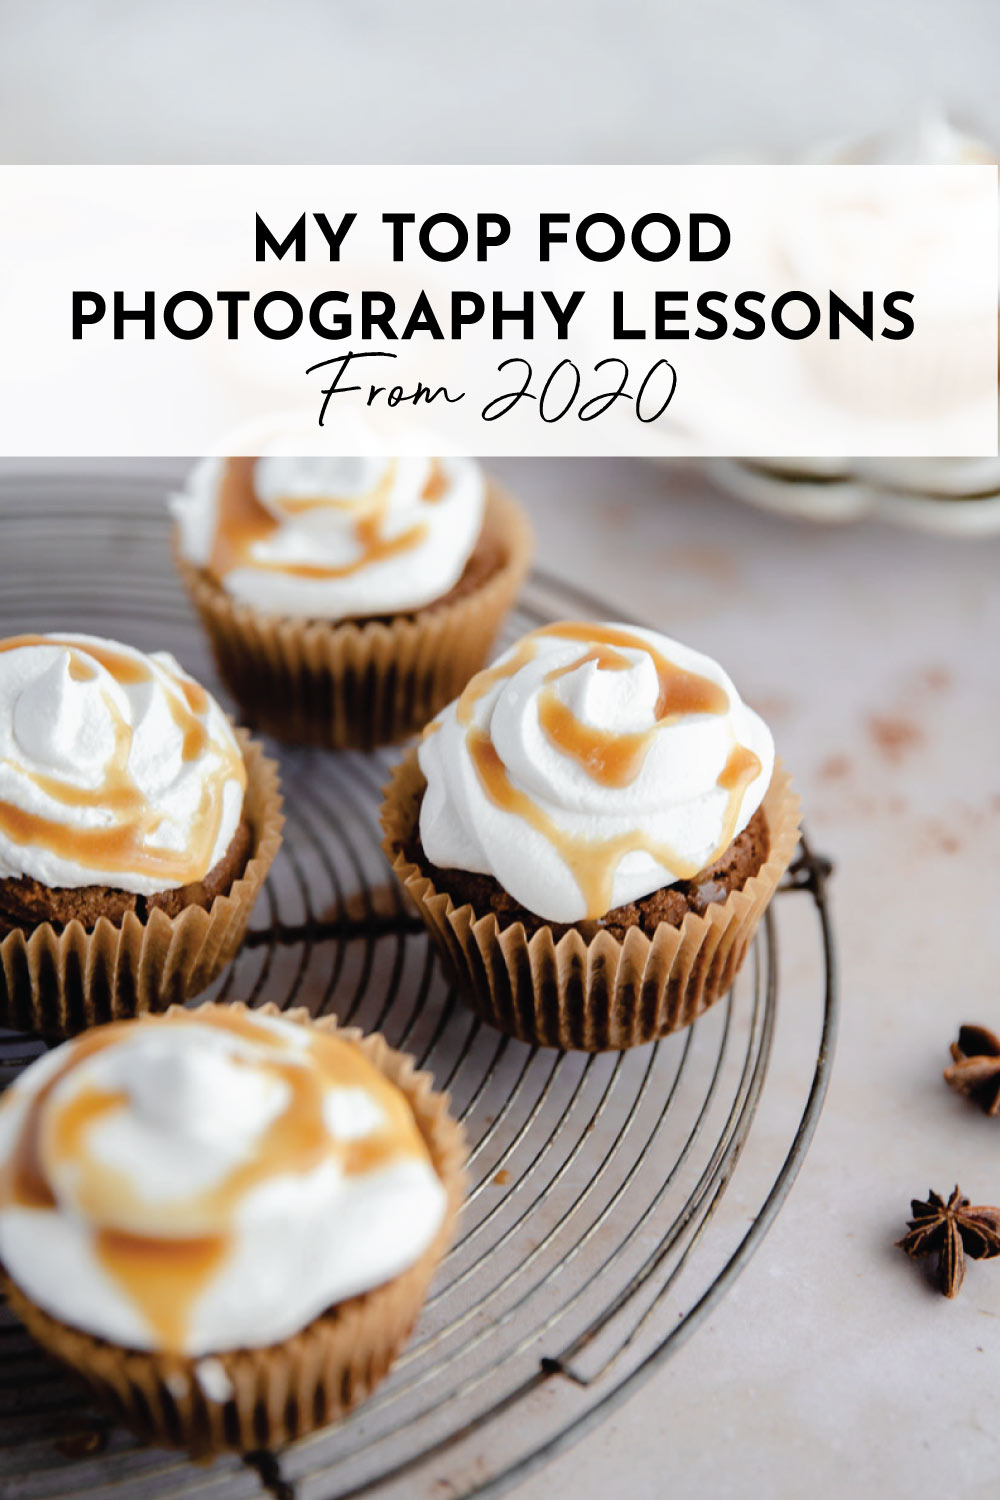 My biggest food photography lessons from the past year.